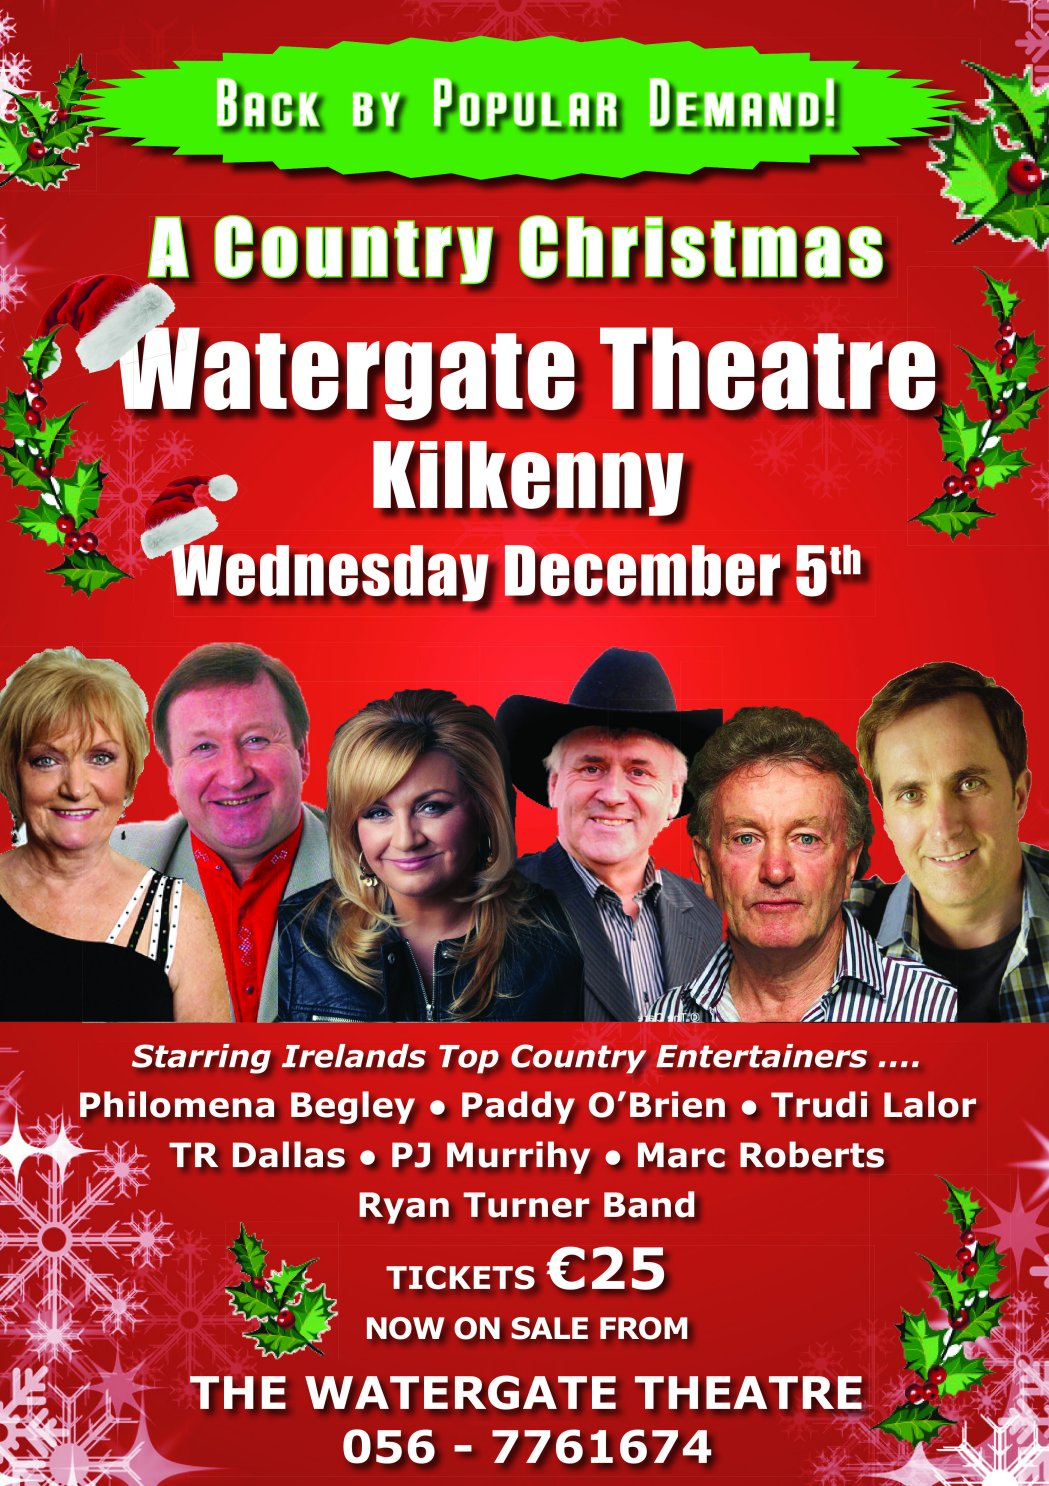 a country christmas watergate theatre kilkenny 5th dec - A Country Christmas